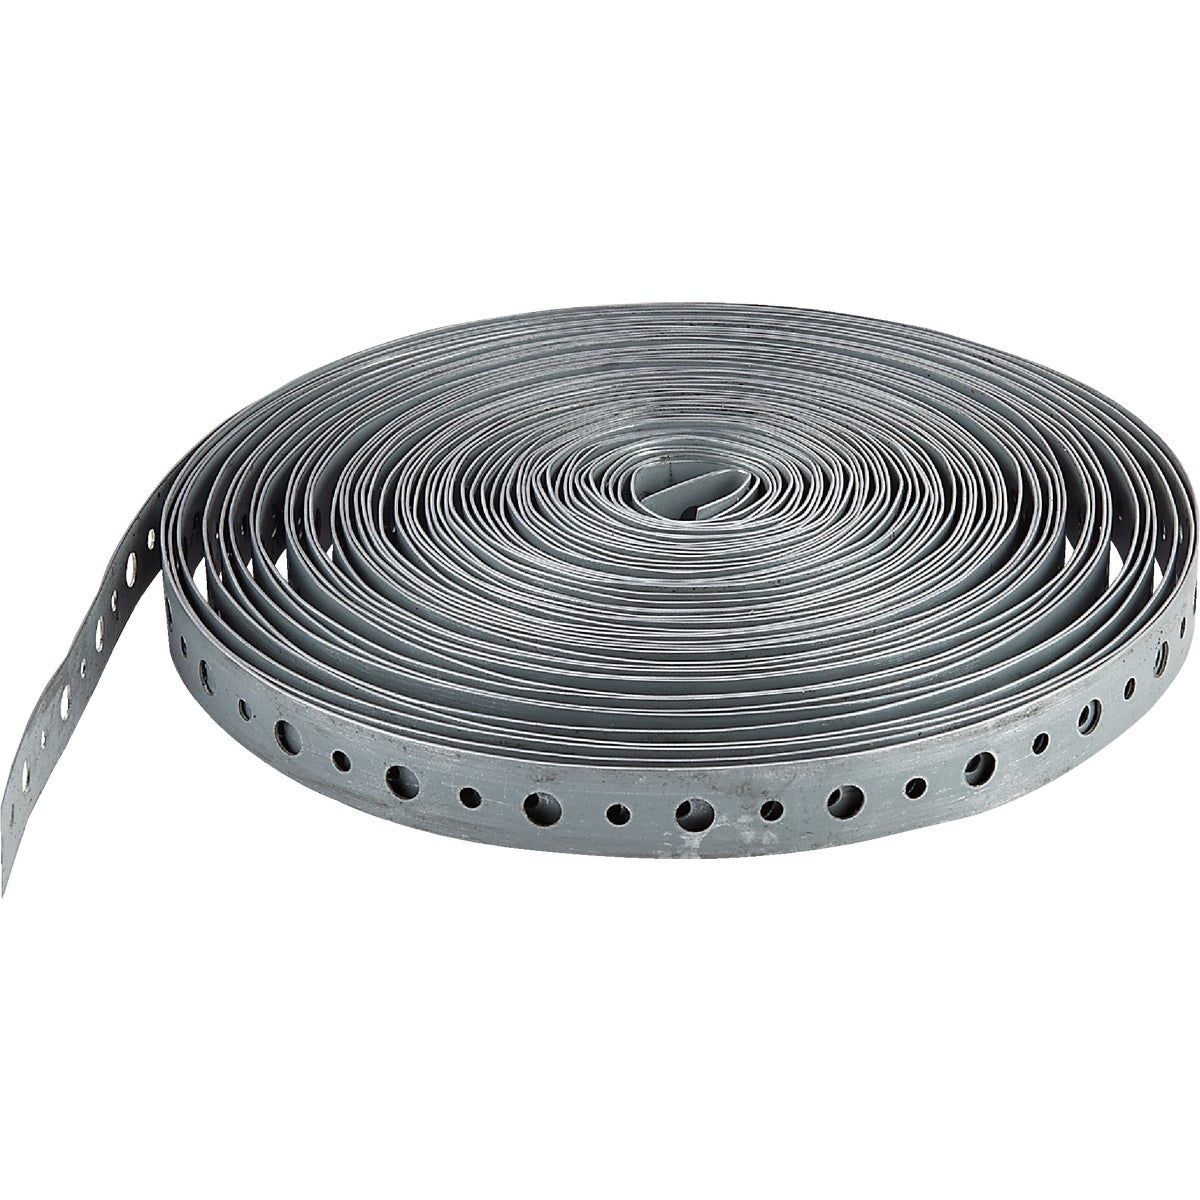 "3/4""X50' GALV STRAP - H20-006 by Jones Stephens Corp"